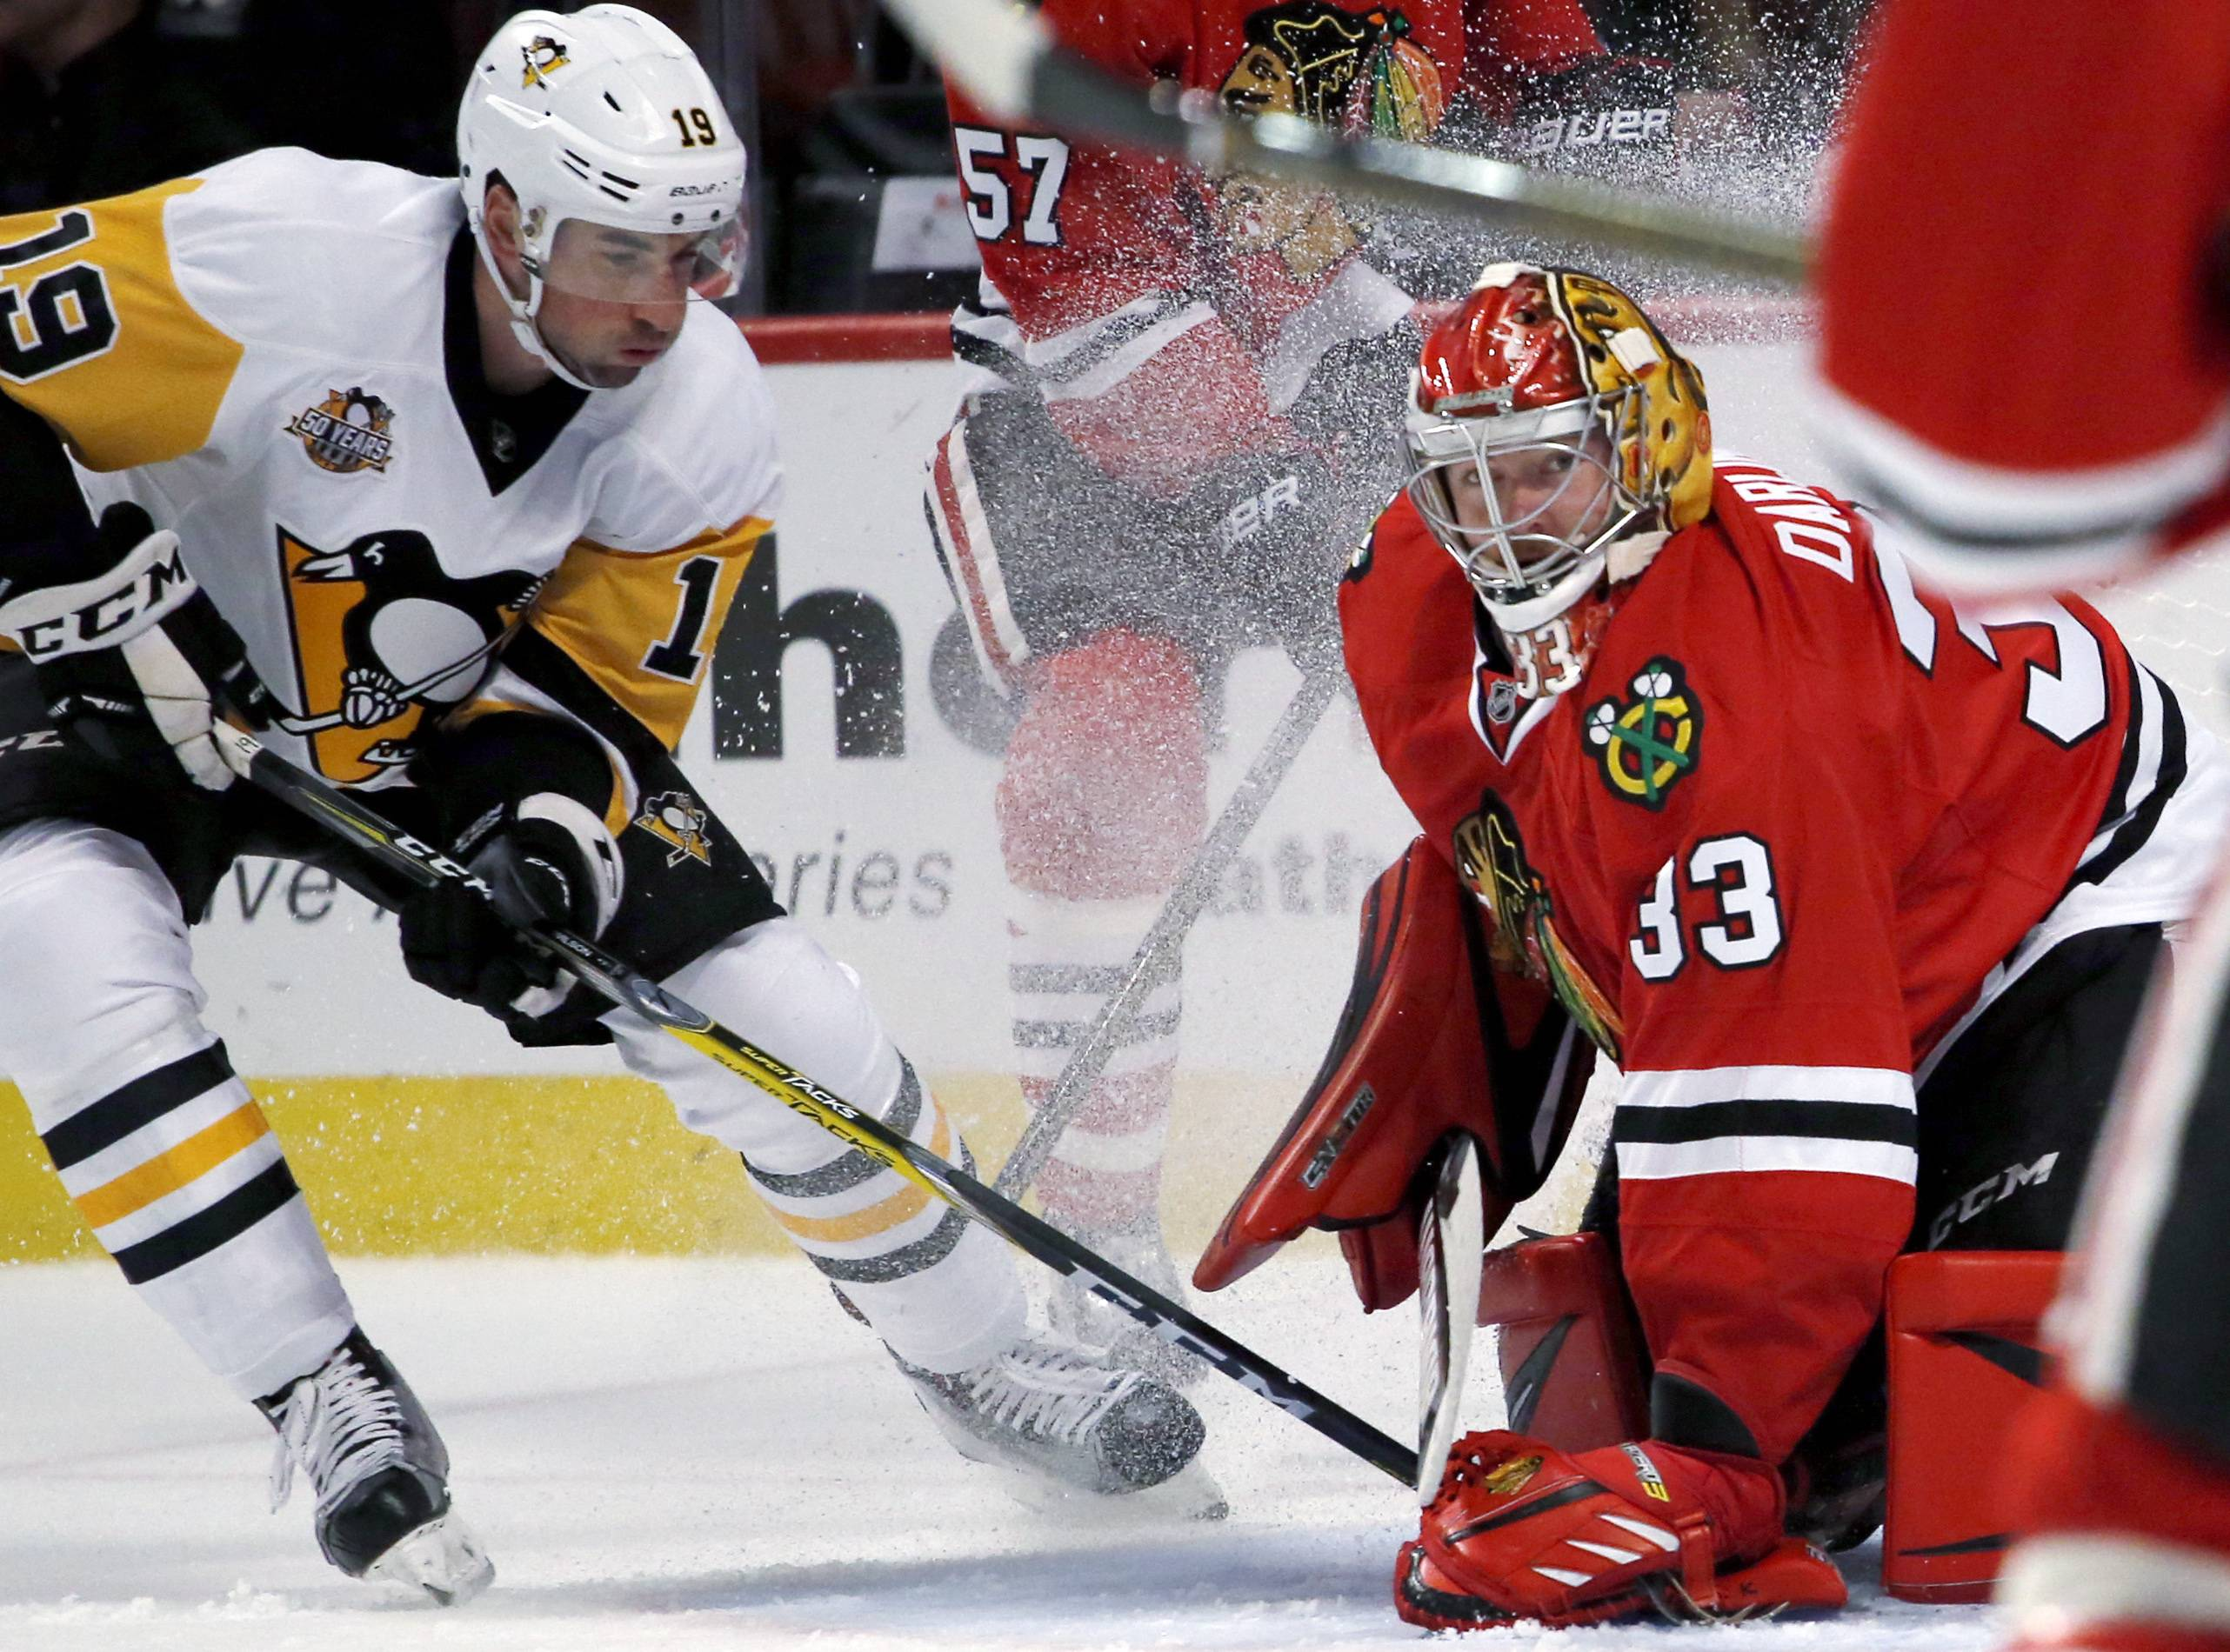 Chicago Blackhawks goalie Scott Darling, right, makes the save on a shot by Pittsburgh Penguins forward Garrett Wilson during the first period of an NHL preseason hockey game Wednesday, Sept. 28, 2016, in Chicago. (AP Photo/Nam Y. Huh)